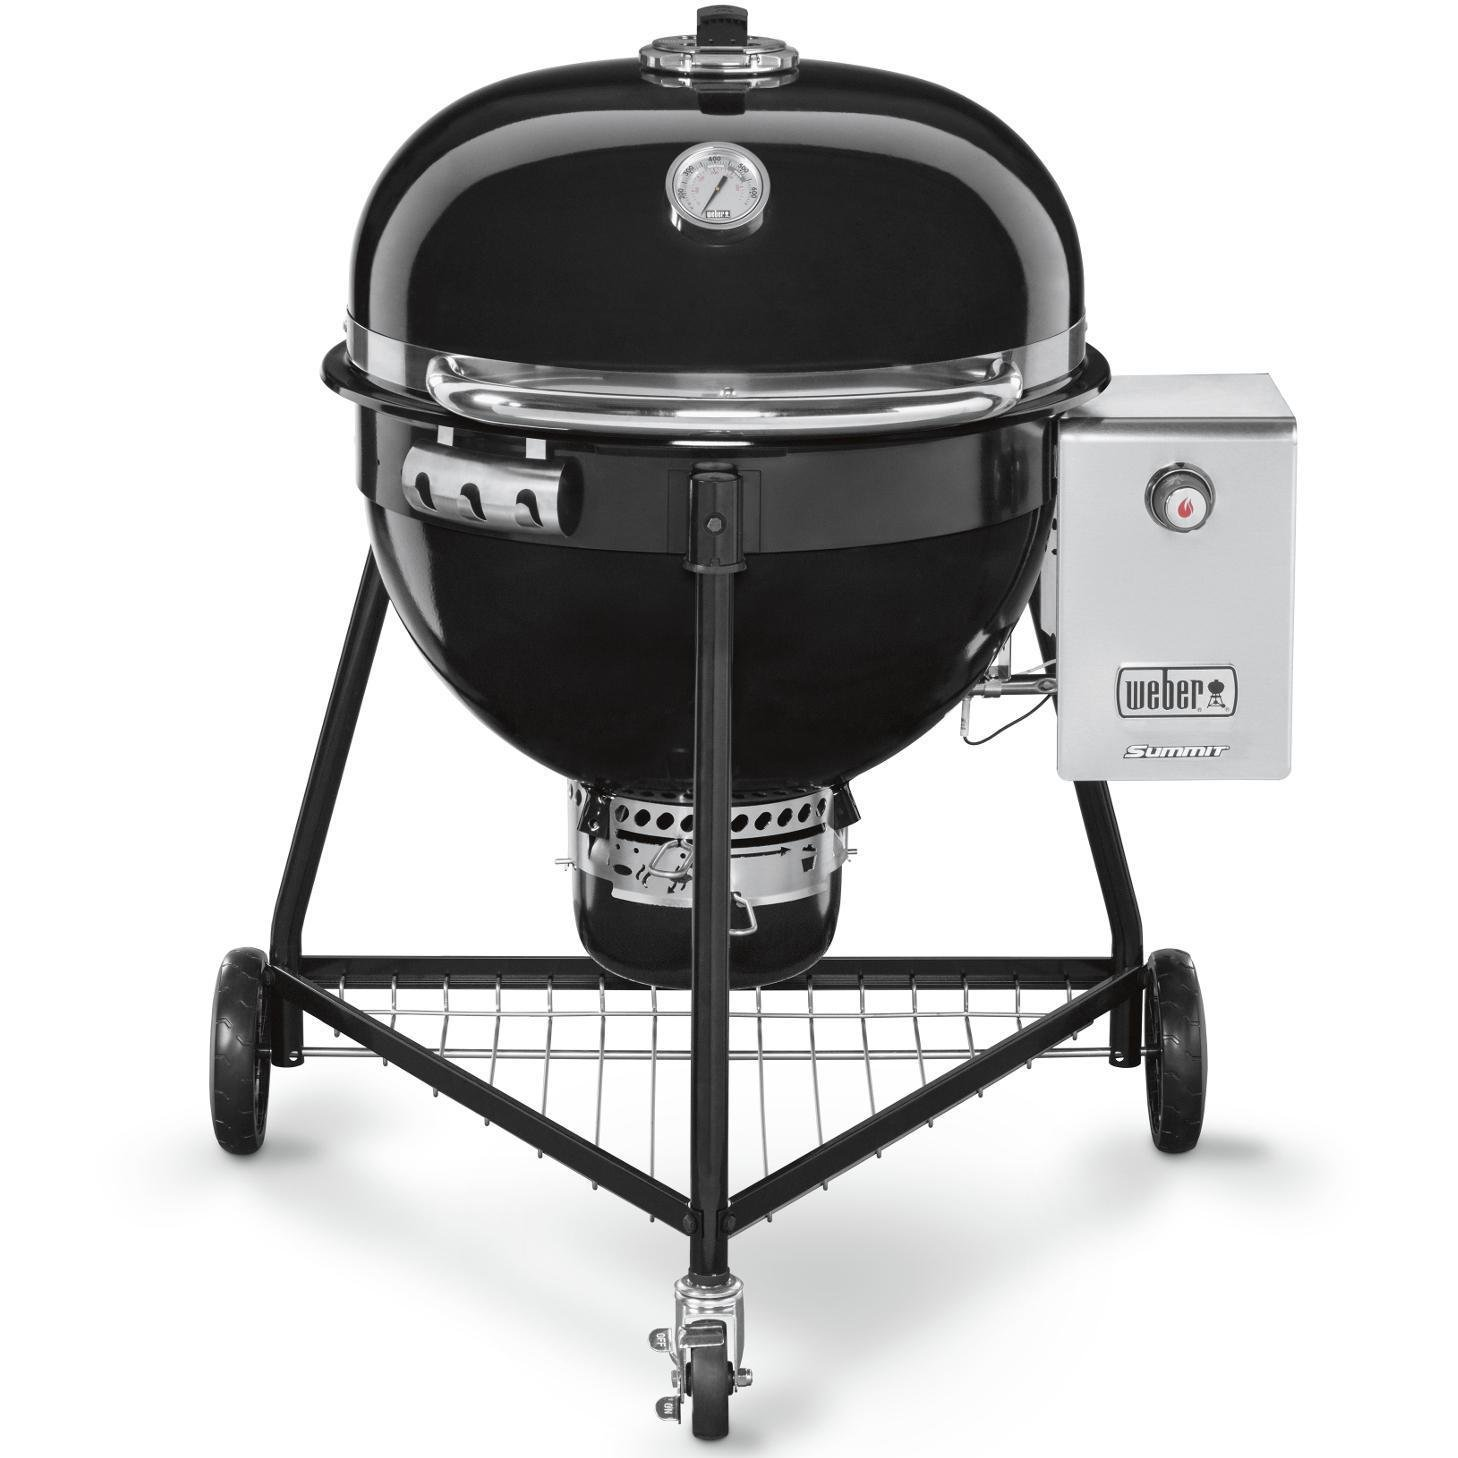 WEBER Summit Charcoal Gril